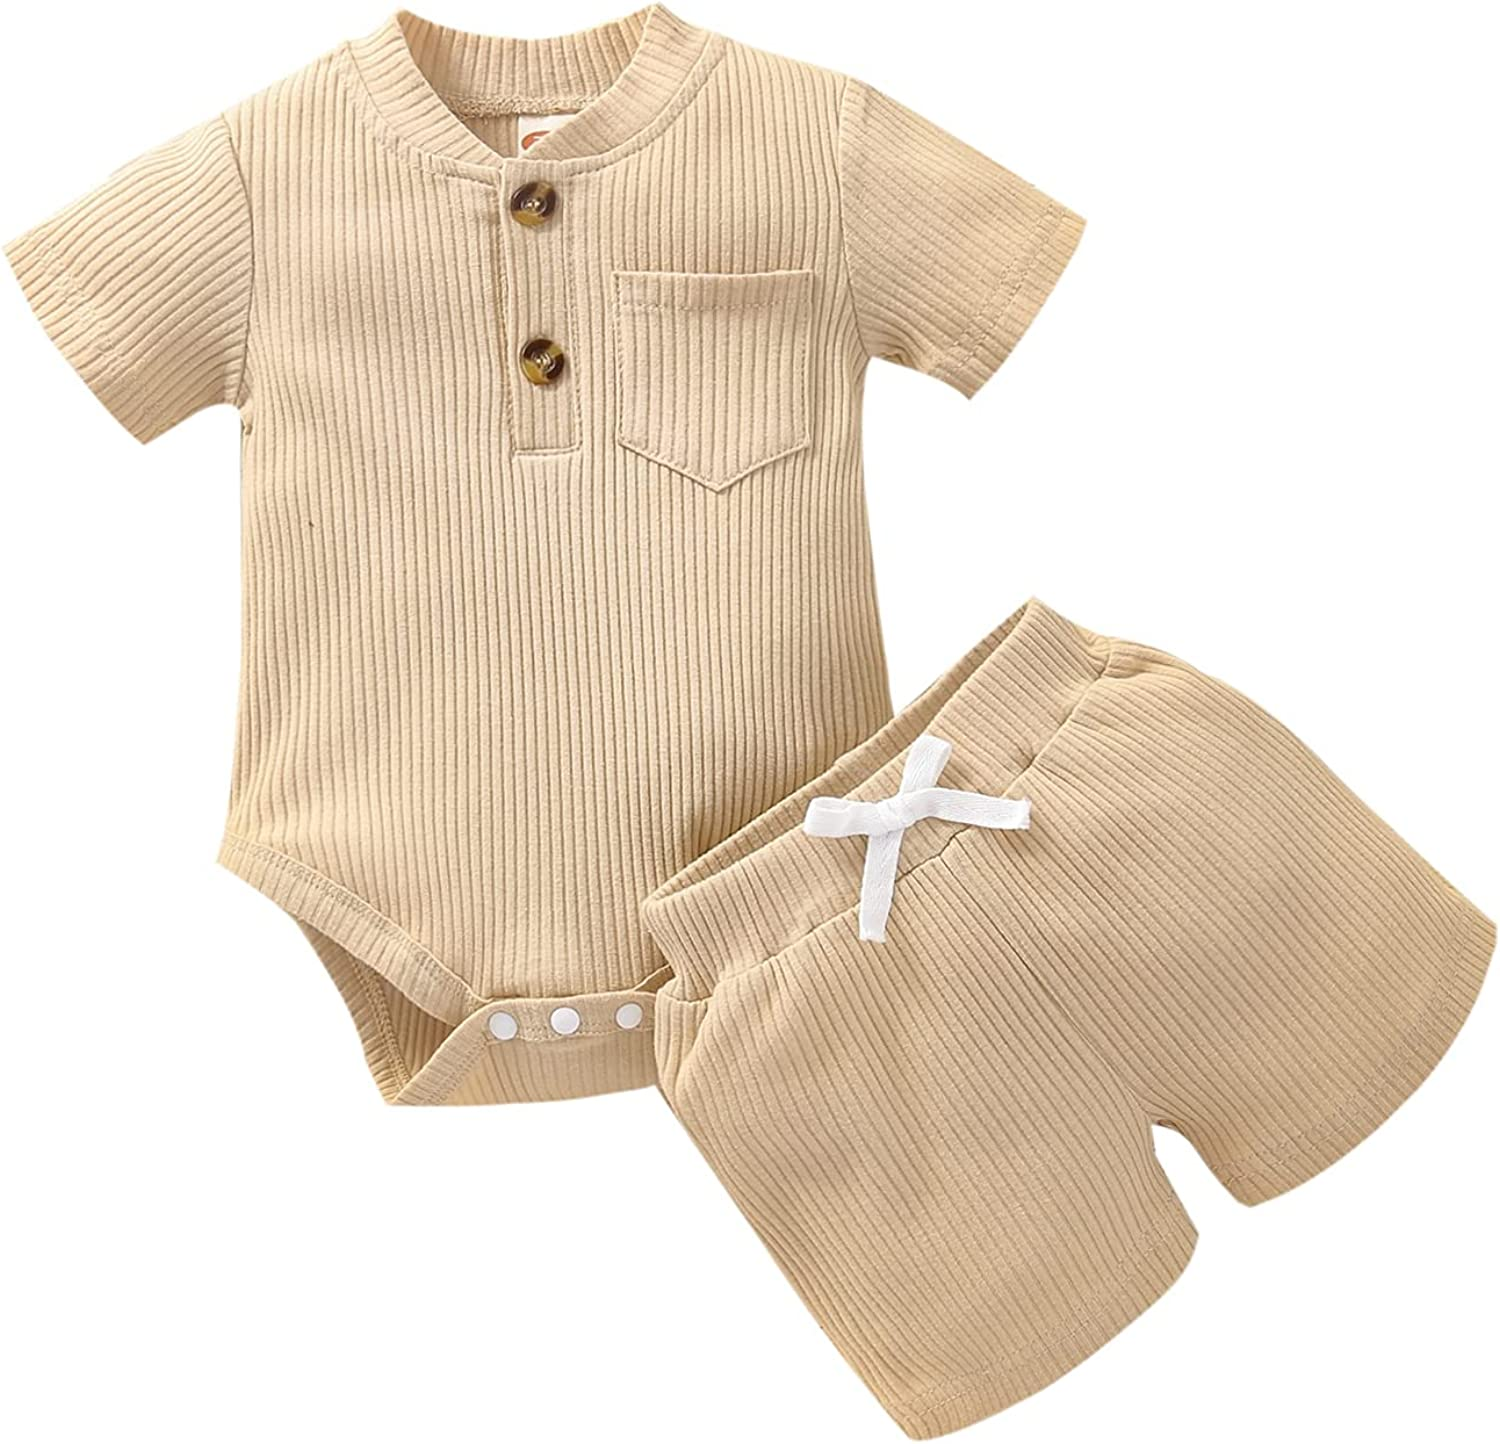 Summer Newborn Baby Boy Girl Clothes Ribbed Outfit Infant Unisex Short Sleeve Pocket Romper Tops and Shorts Set